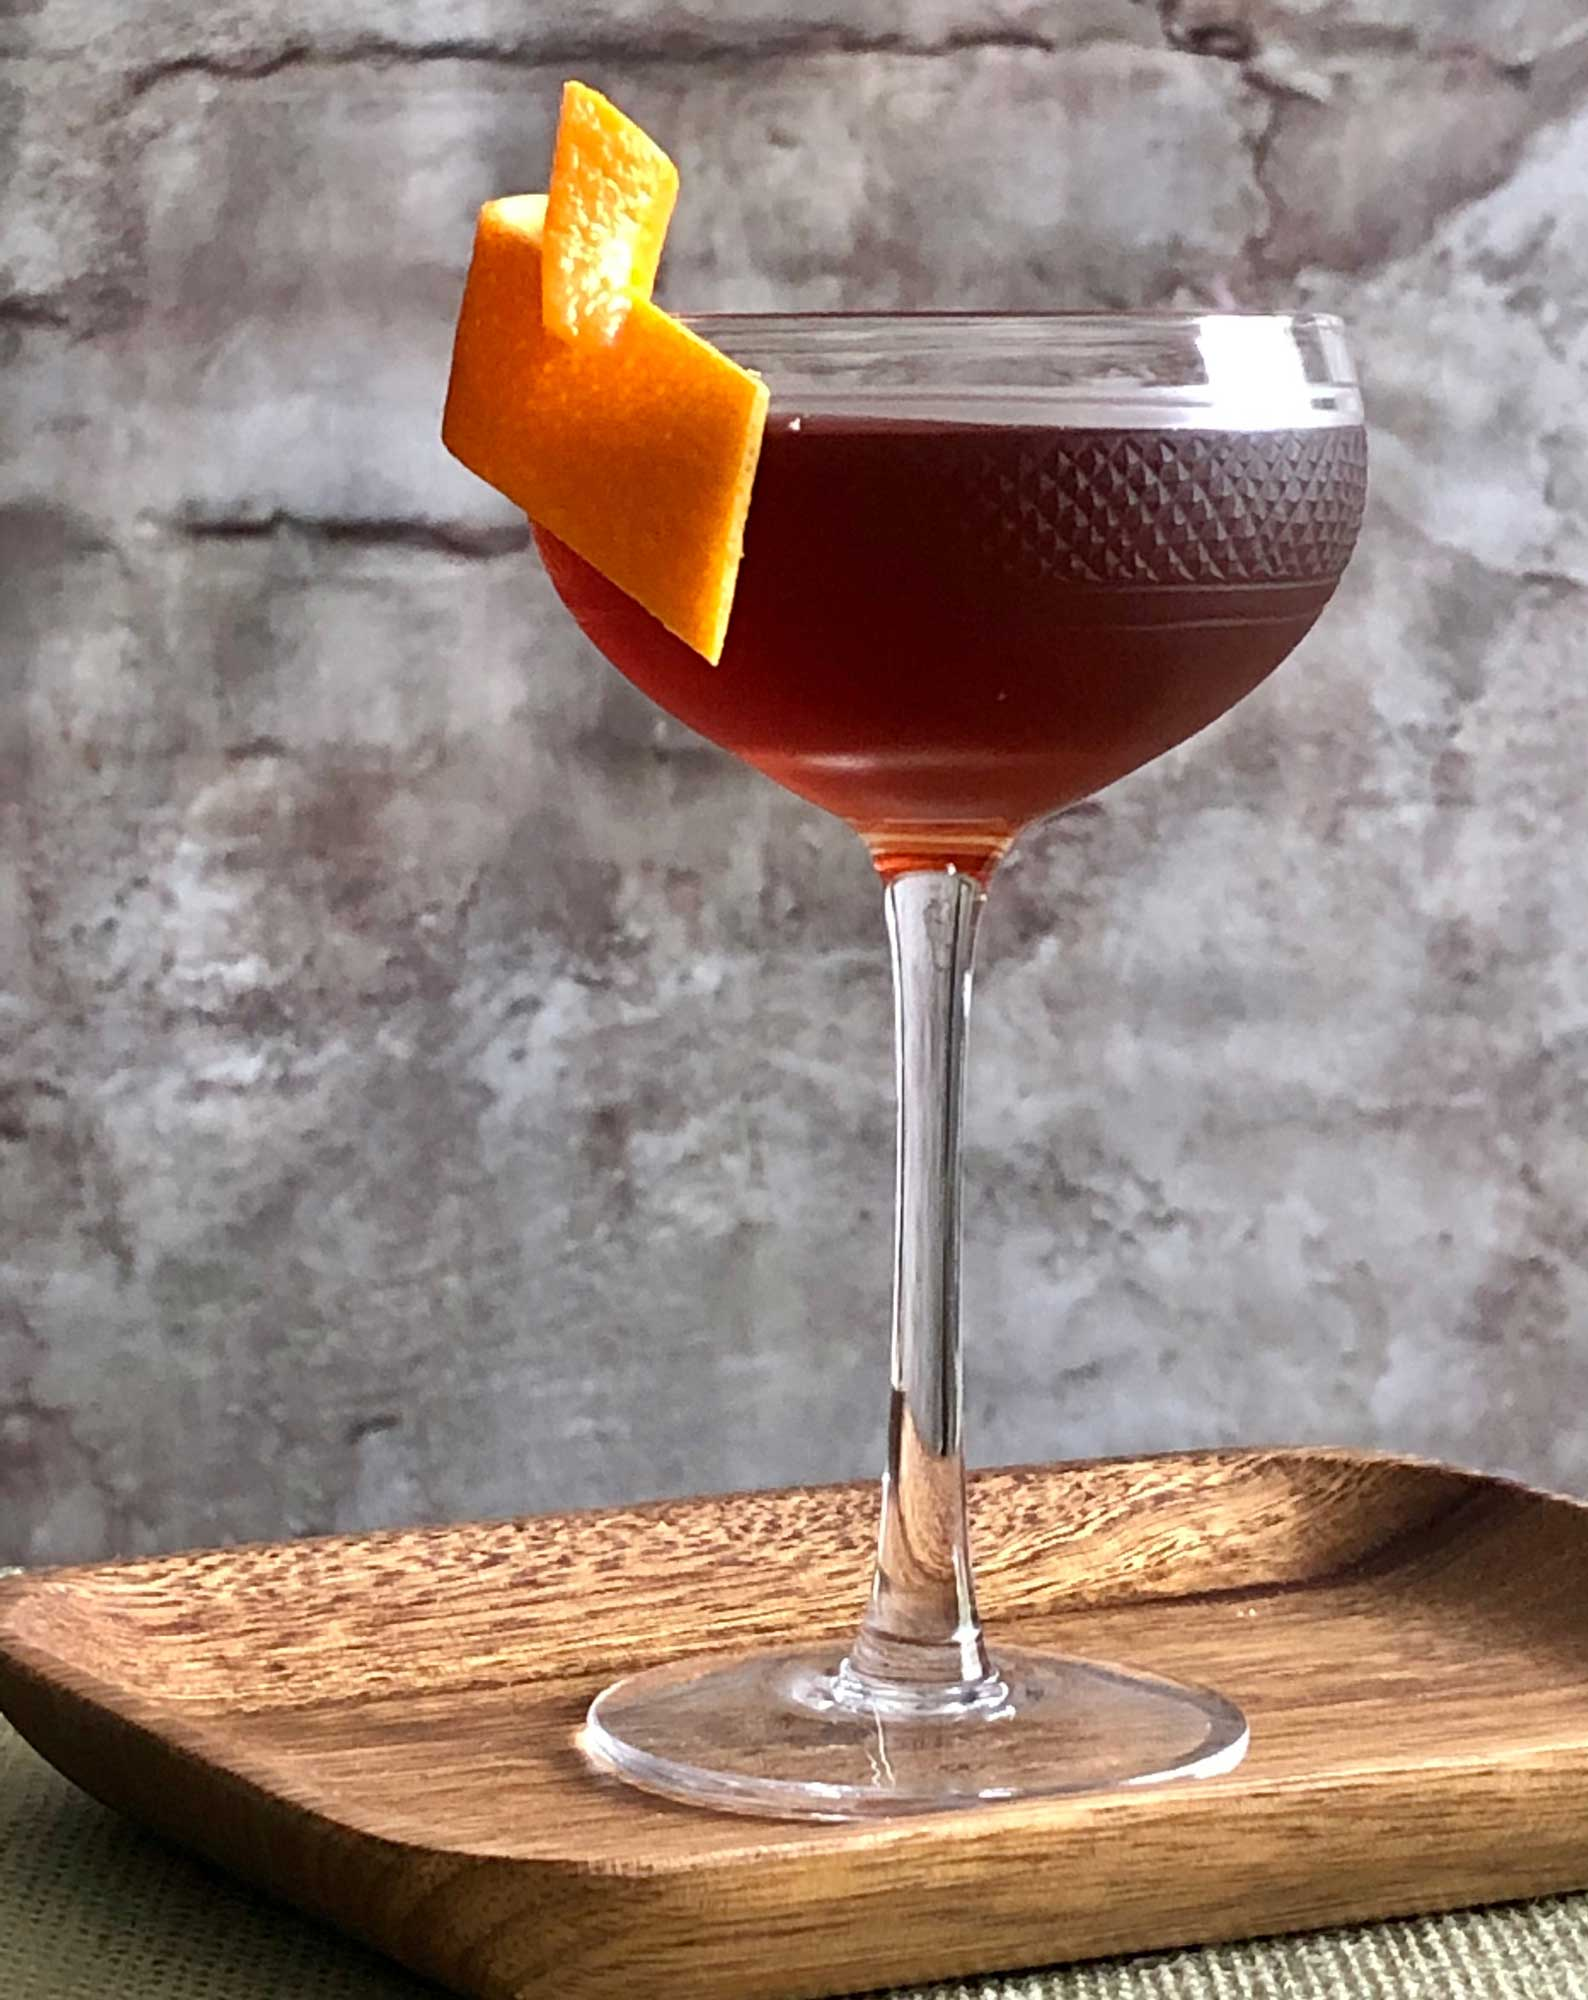 An example of the Stadium of Light, the mixed drink (cocktail) featuring Henriques & Henriques Rainwater Madeira, Dolin Rouge Vermouth de Chambéry, orange bitters, and Angostura bitters; photo by Lee Edwards